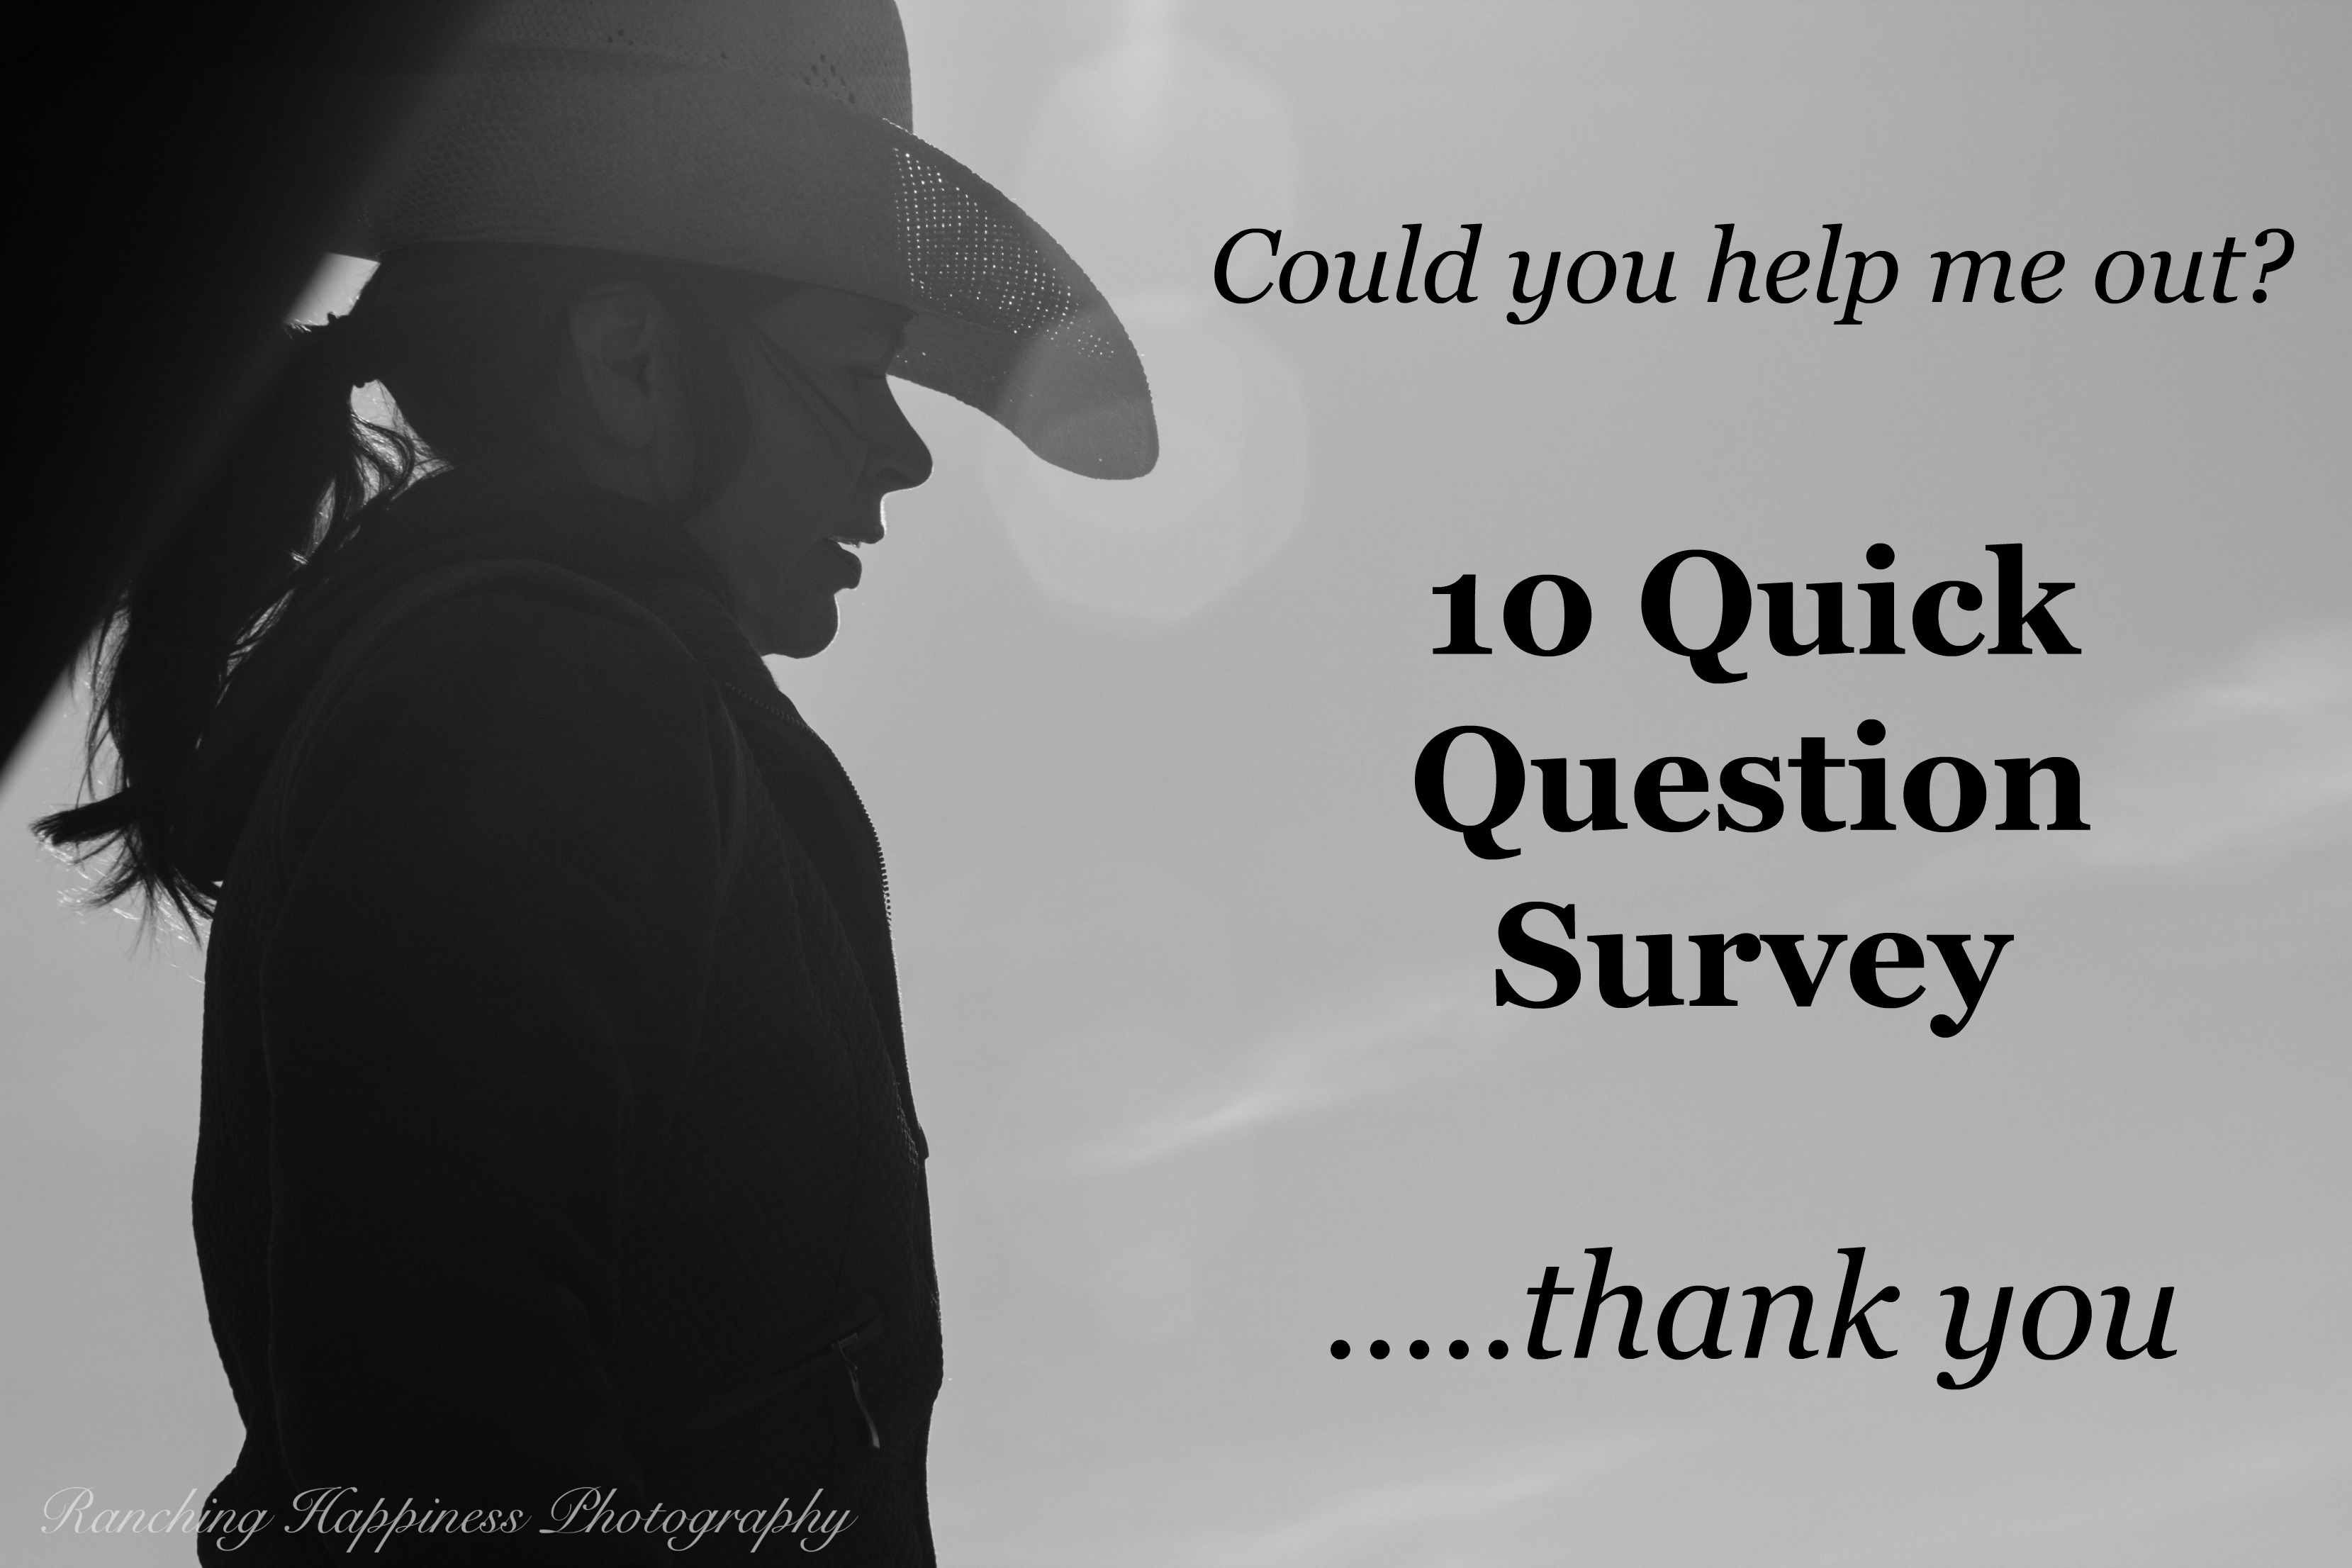 10 Quick Question Survey